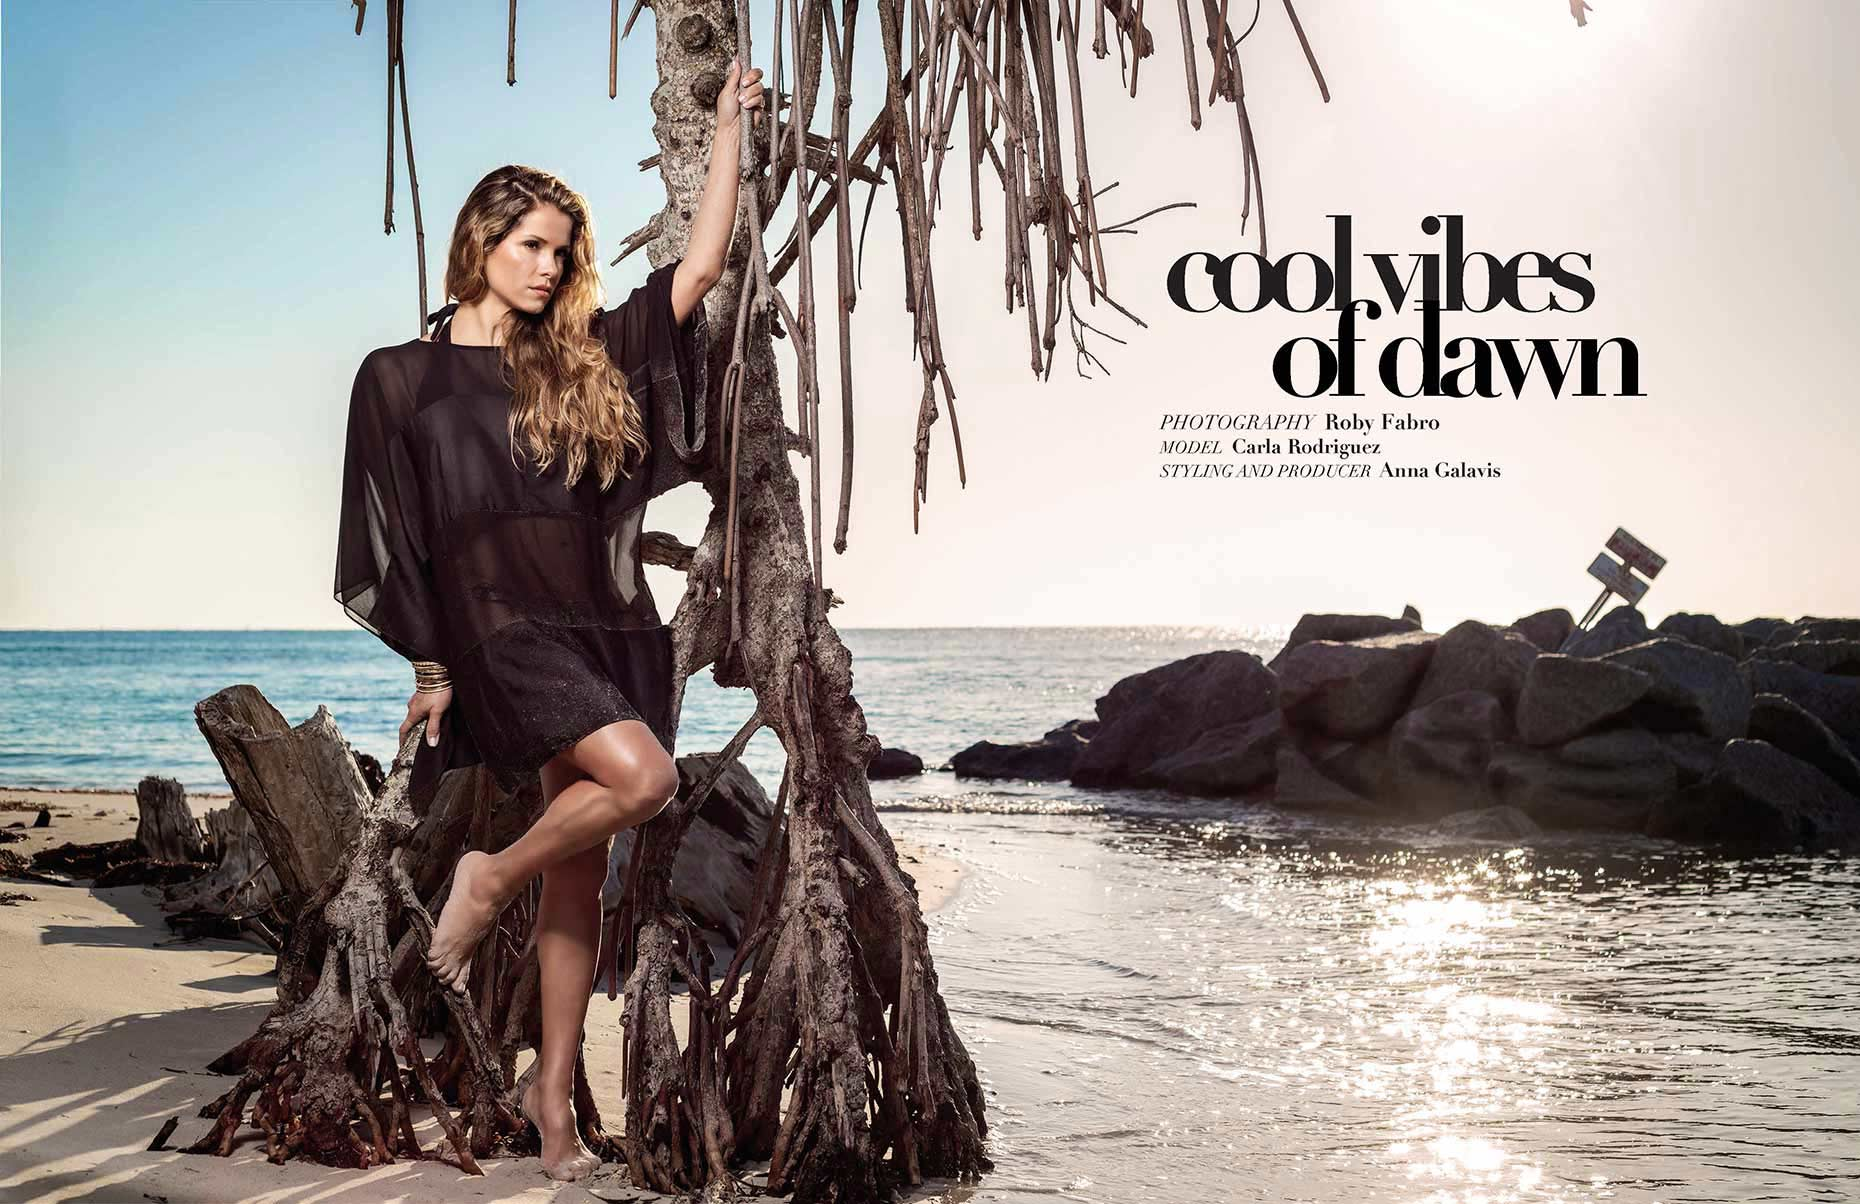 Assure-Magazine-Waiting for dawn | RobyFabro Miami fashion photographer